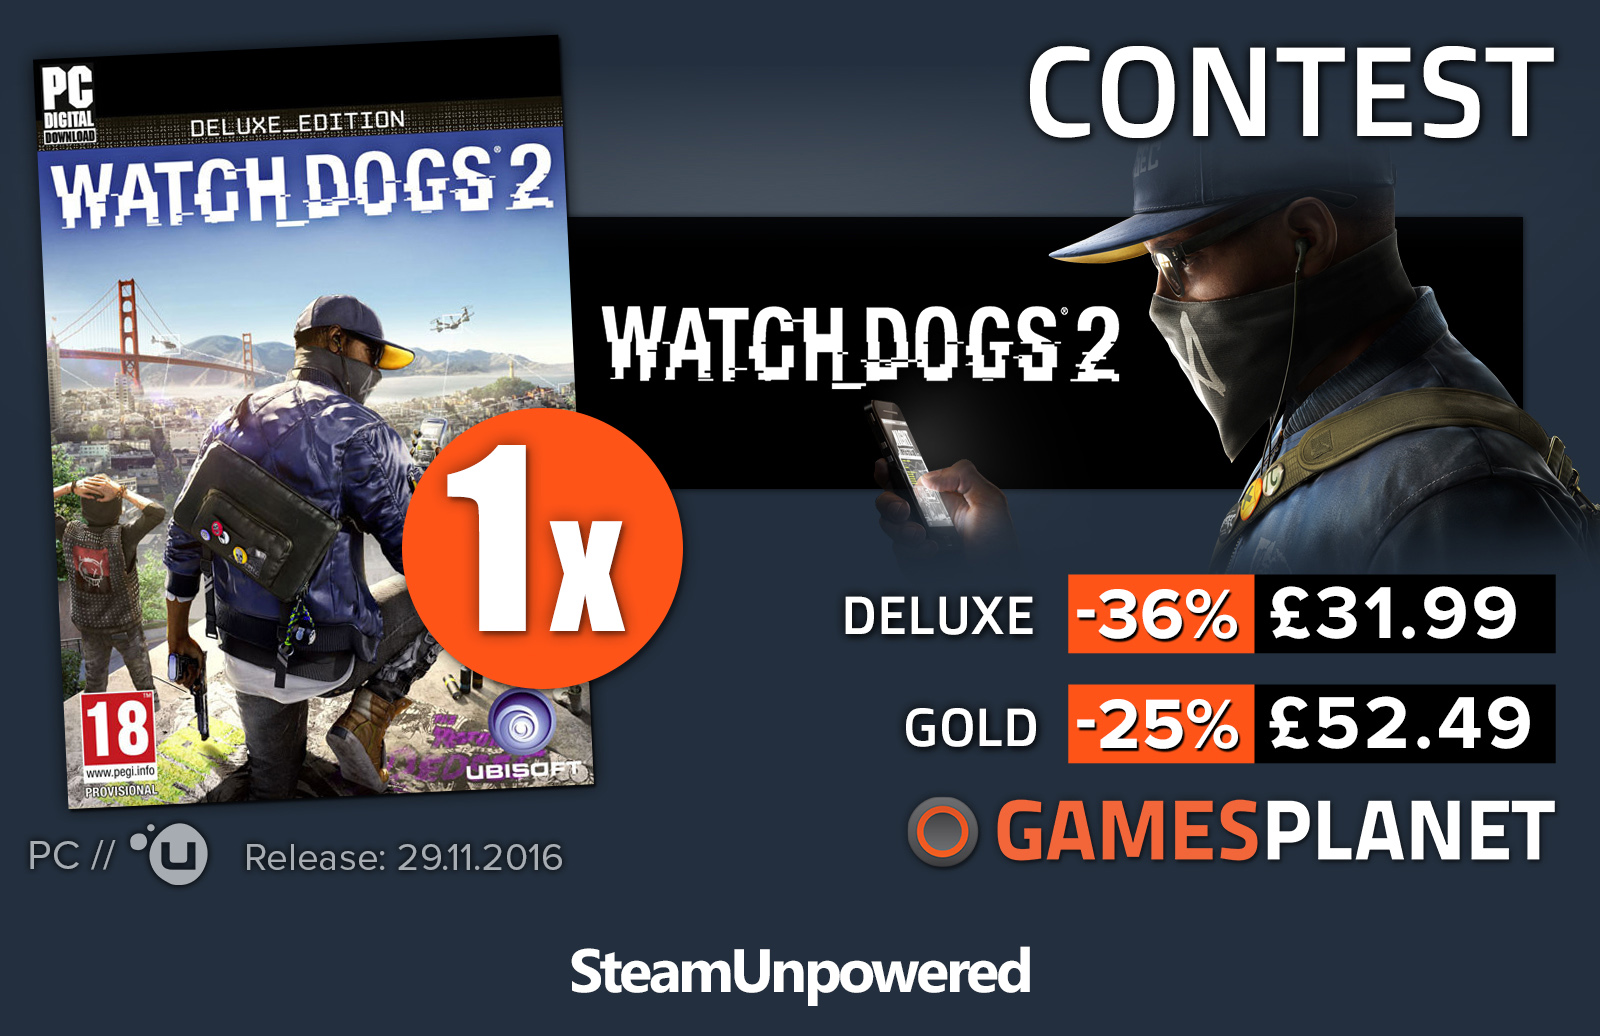 steam-unpowered-contest-games-planet-watch-dogs-2